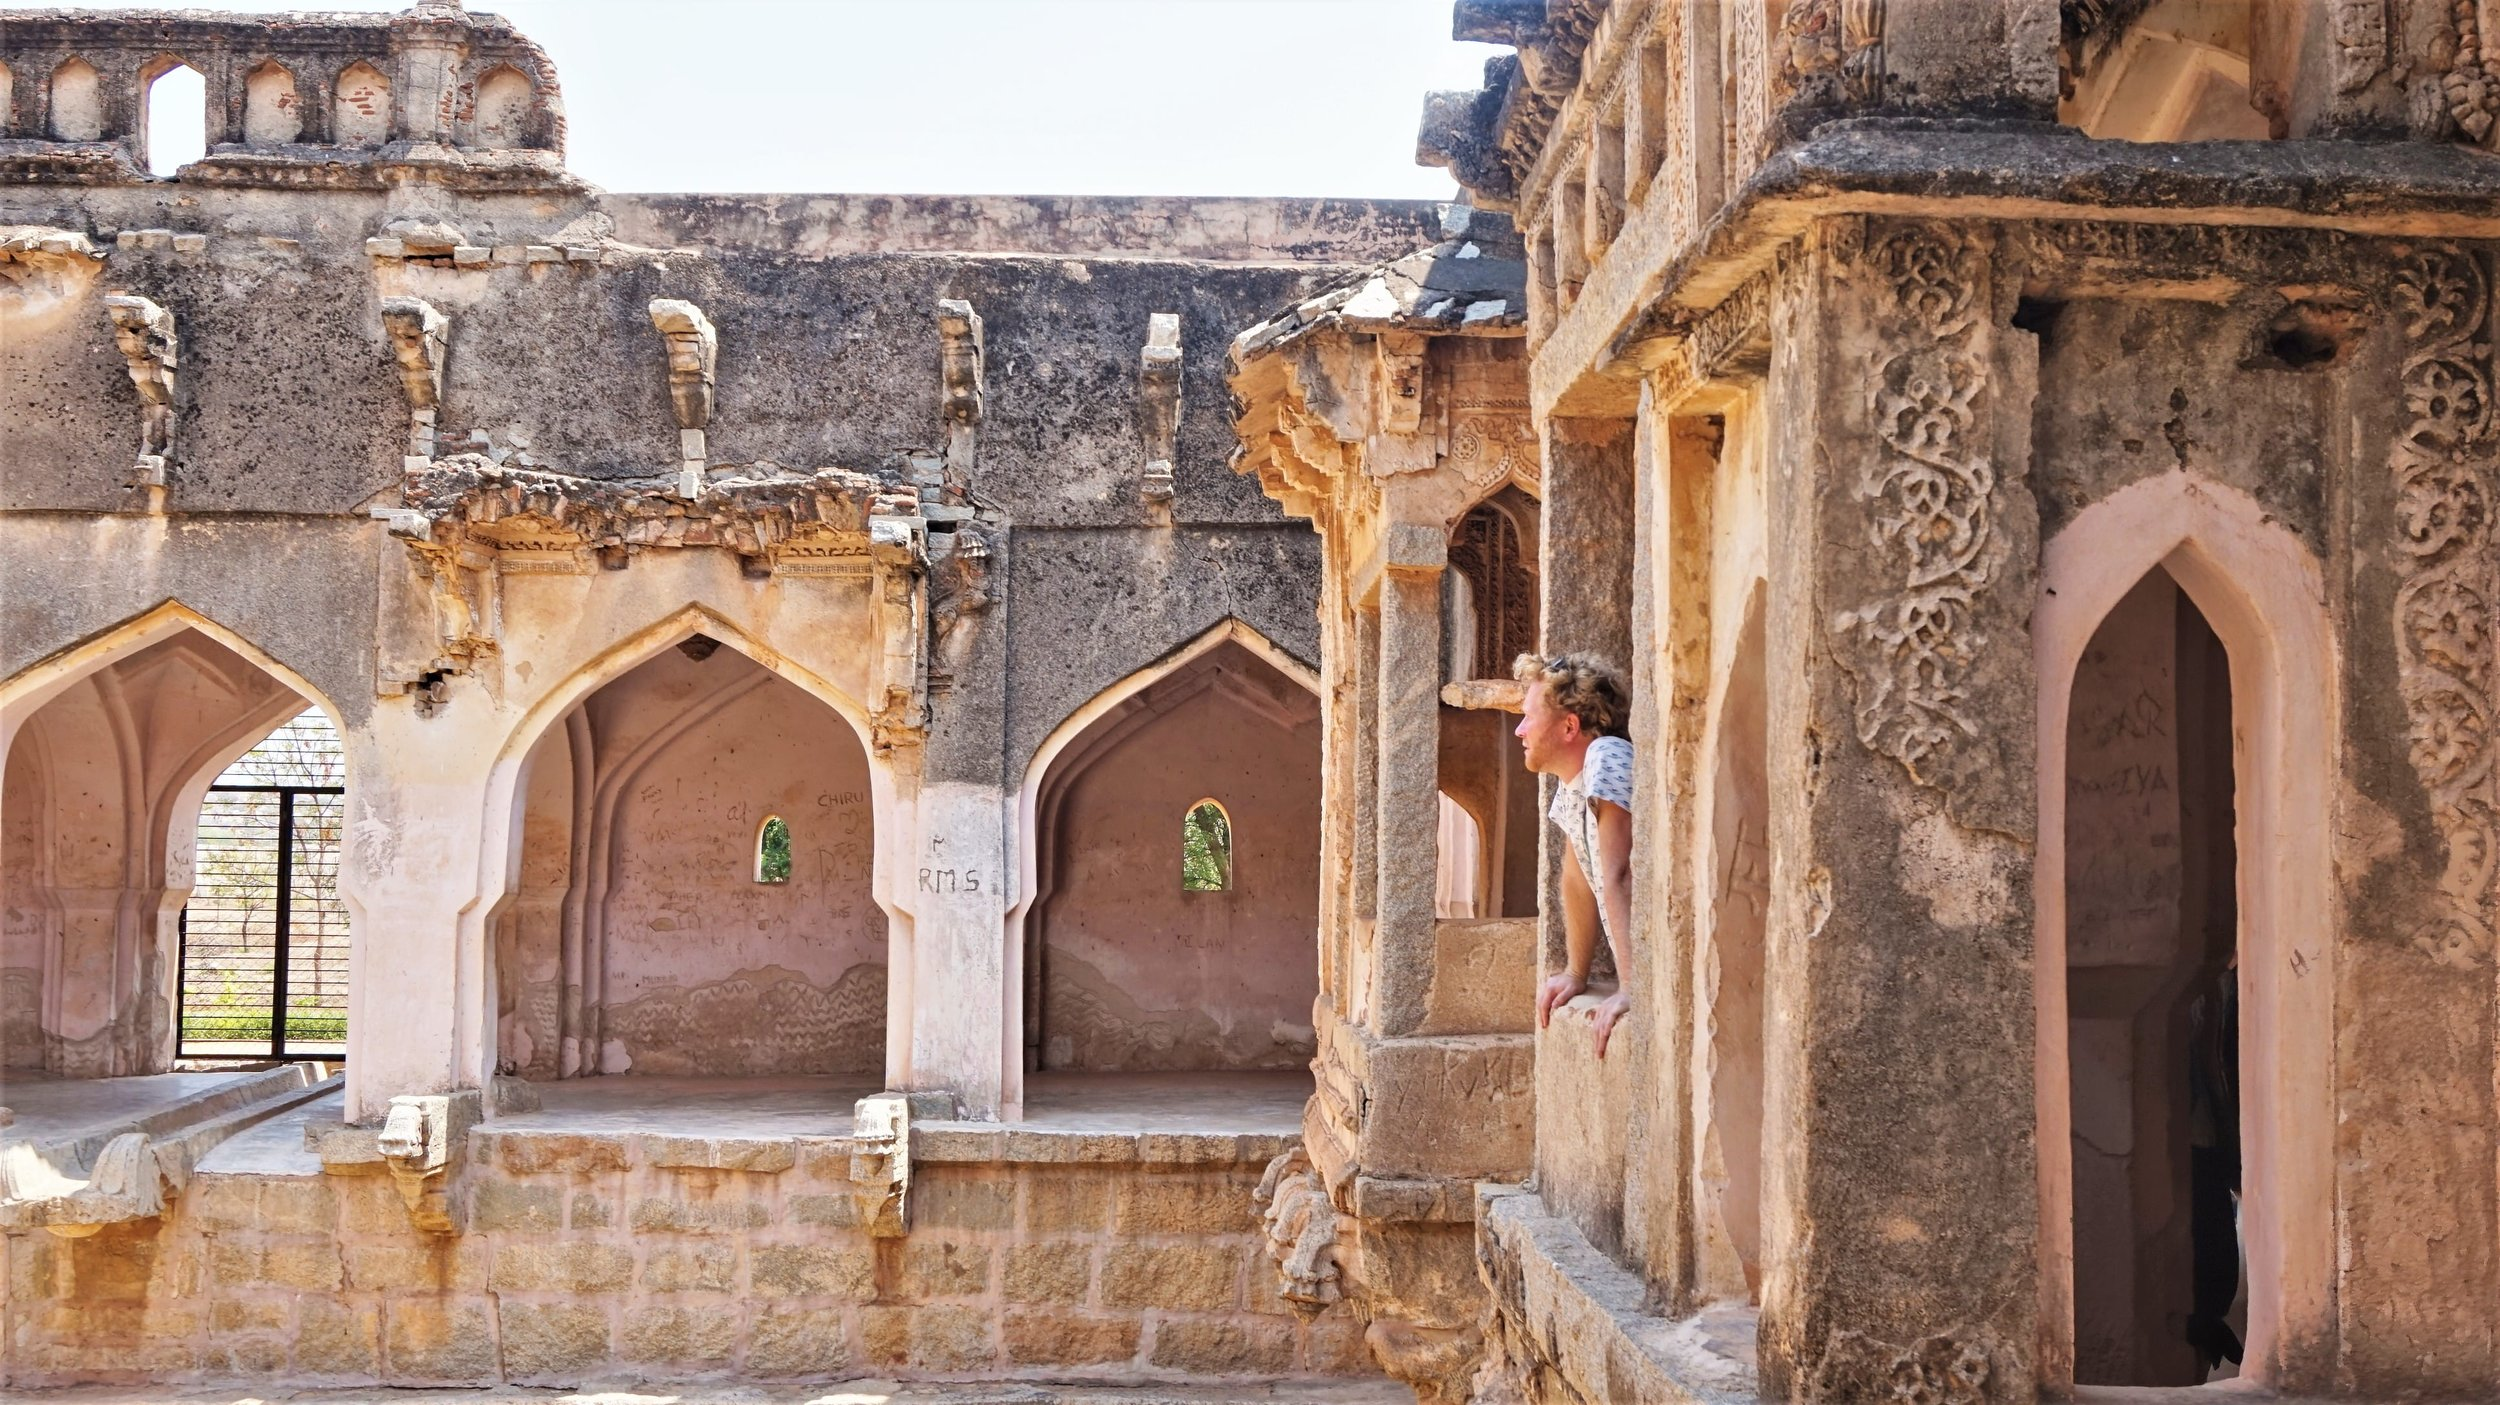 Many of the ruins around Hampi are still in very good conditions.